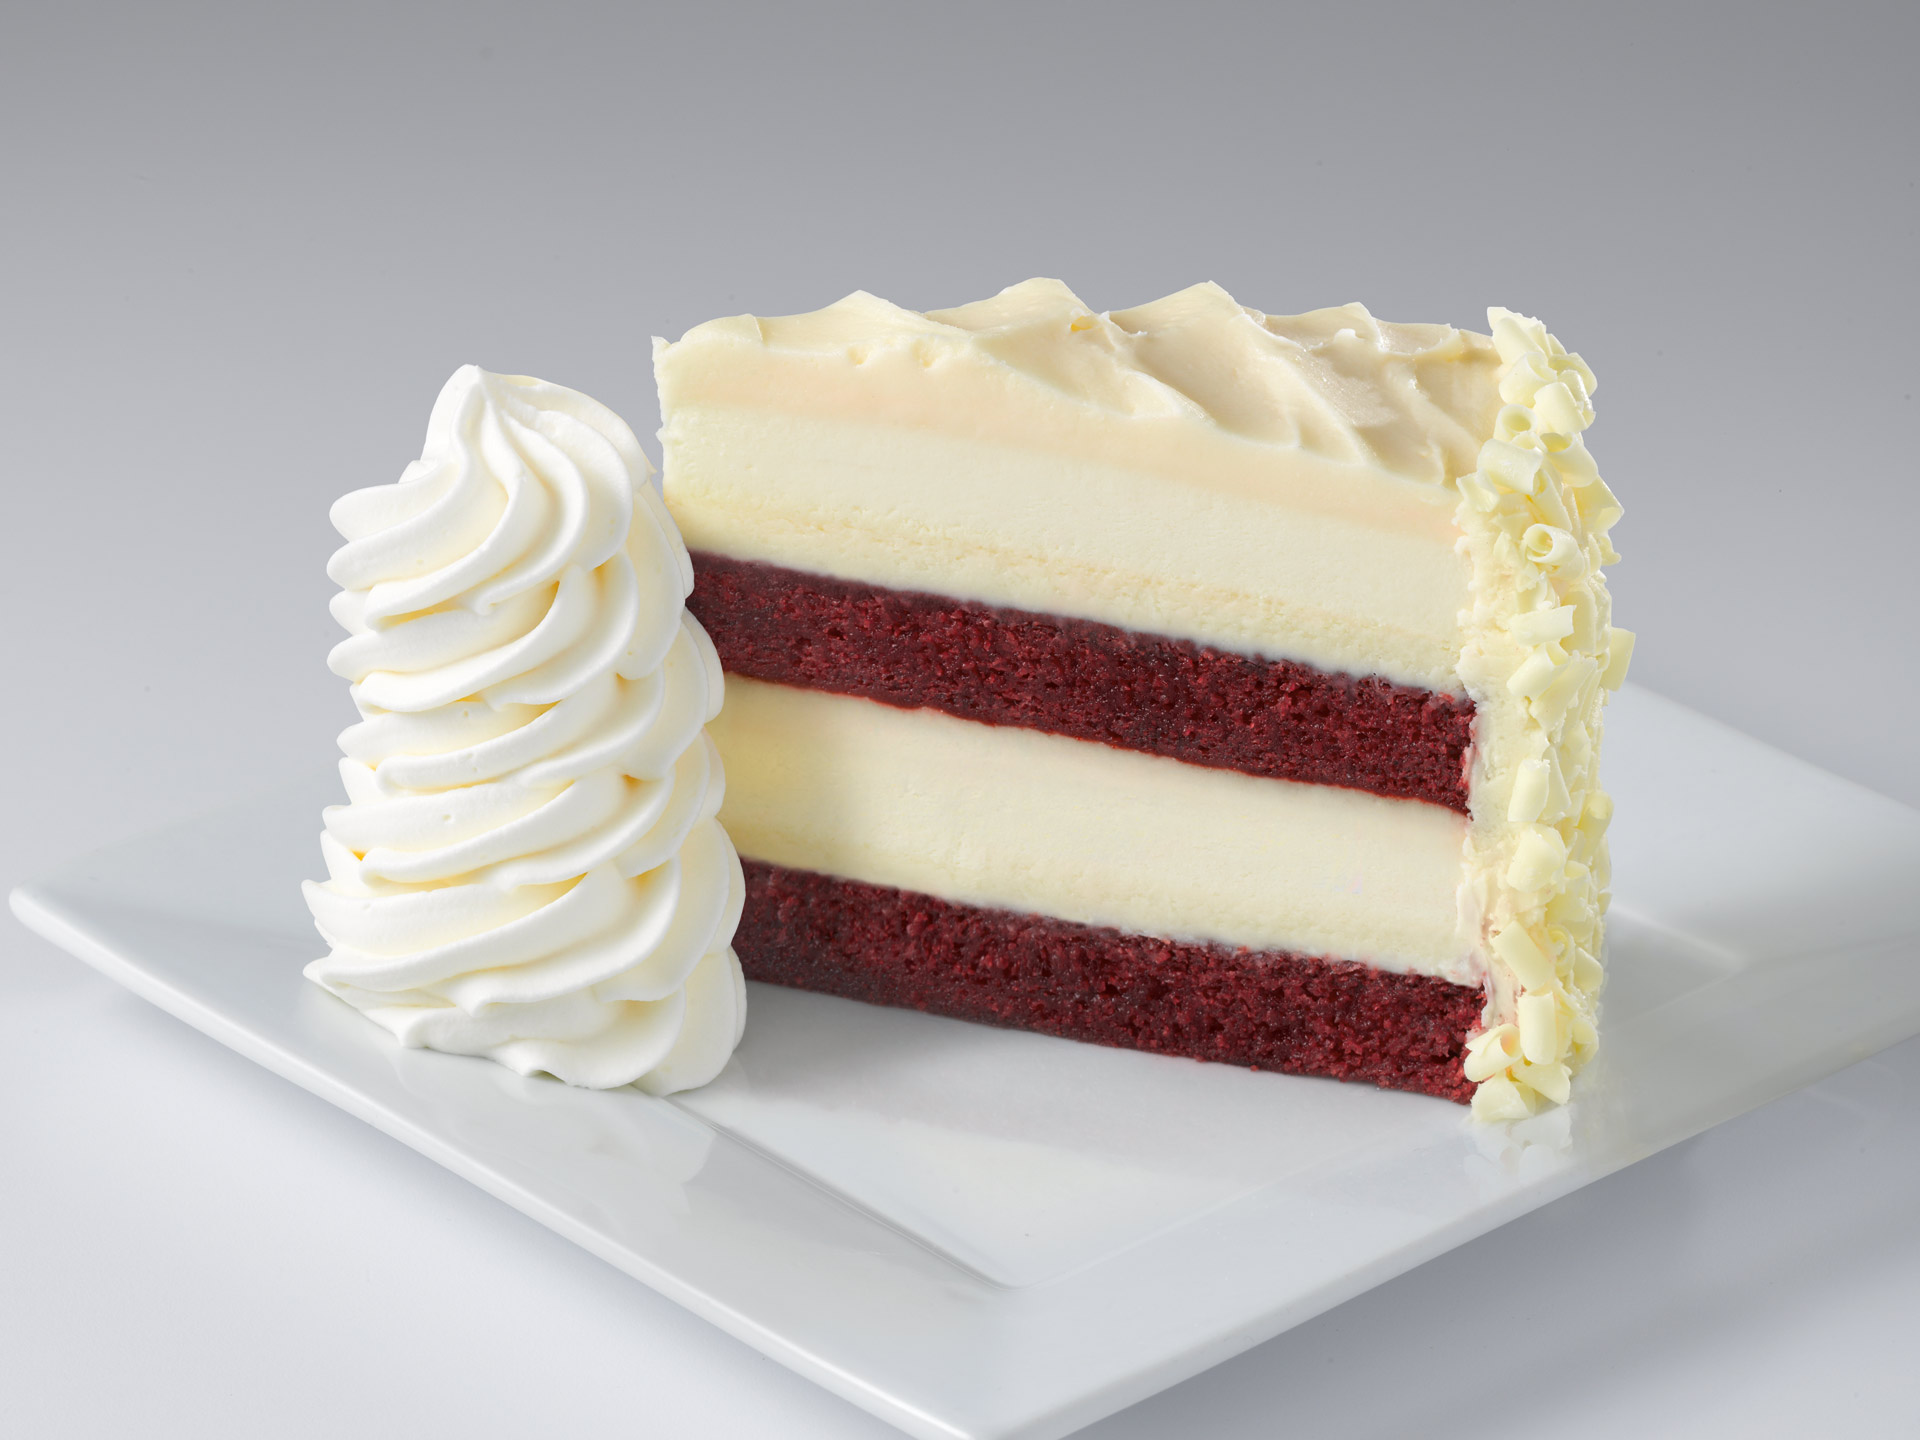 Cheesecake Backgrounds, Compatible - PC, Mobile, Gadgets| 1920x1440 px